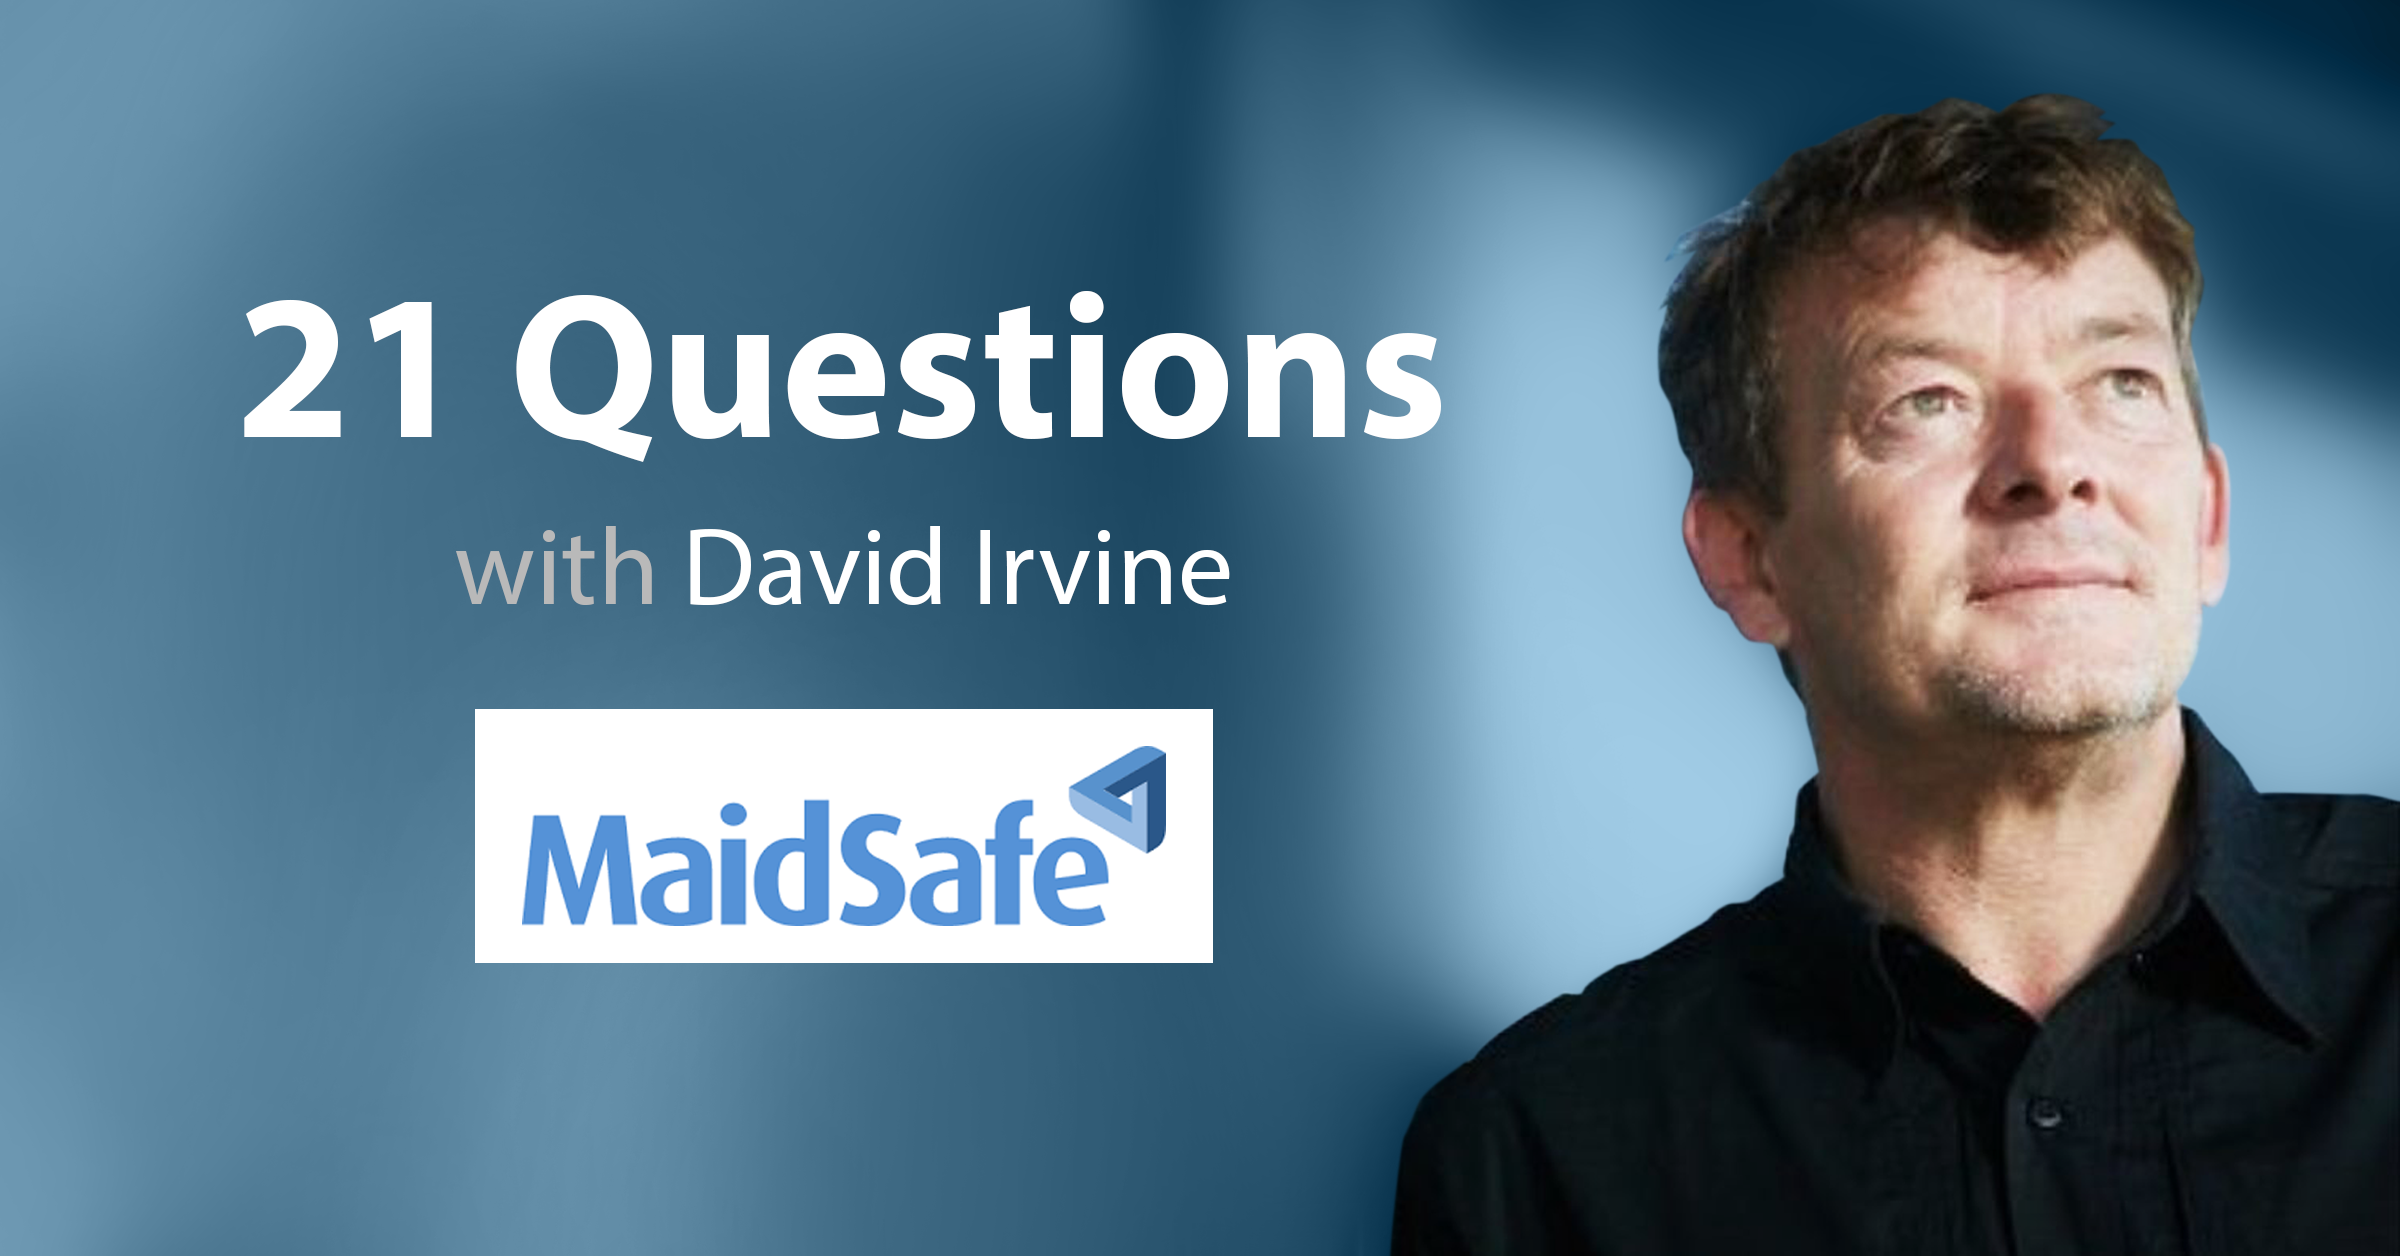 21 Questions with decentralize.today featuring David Irvine